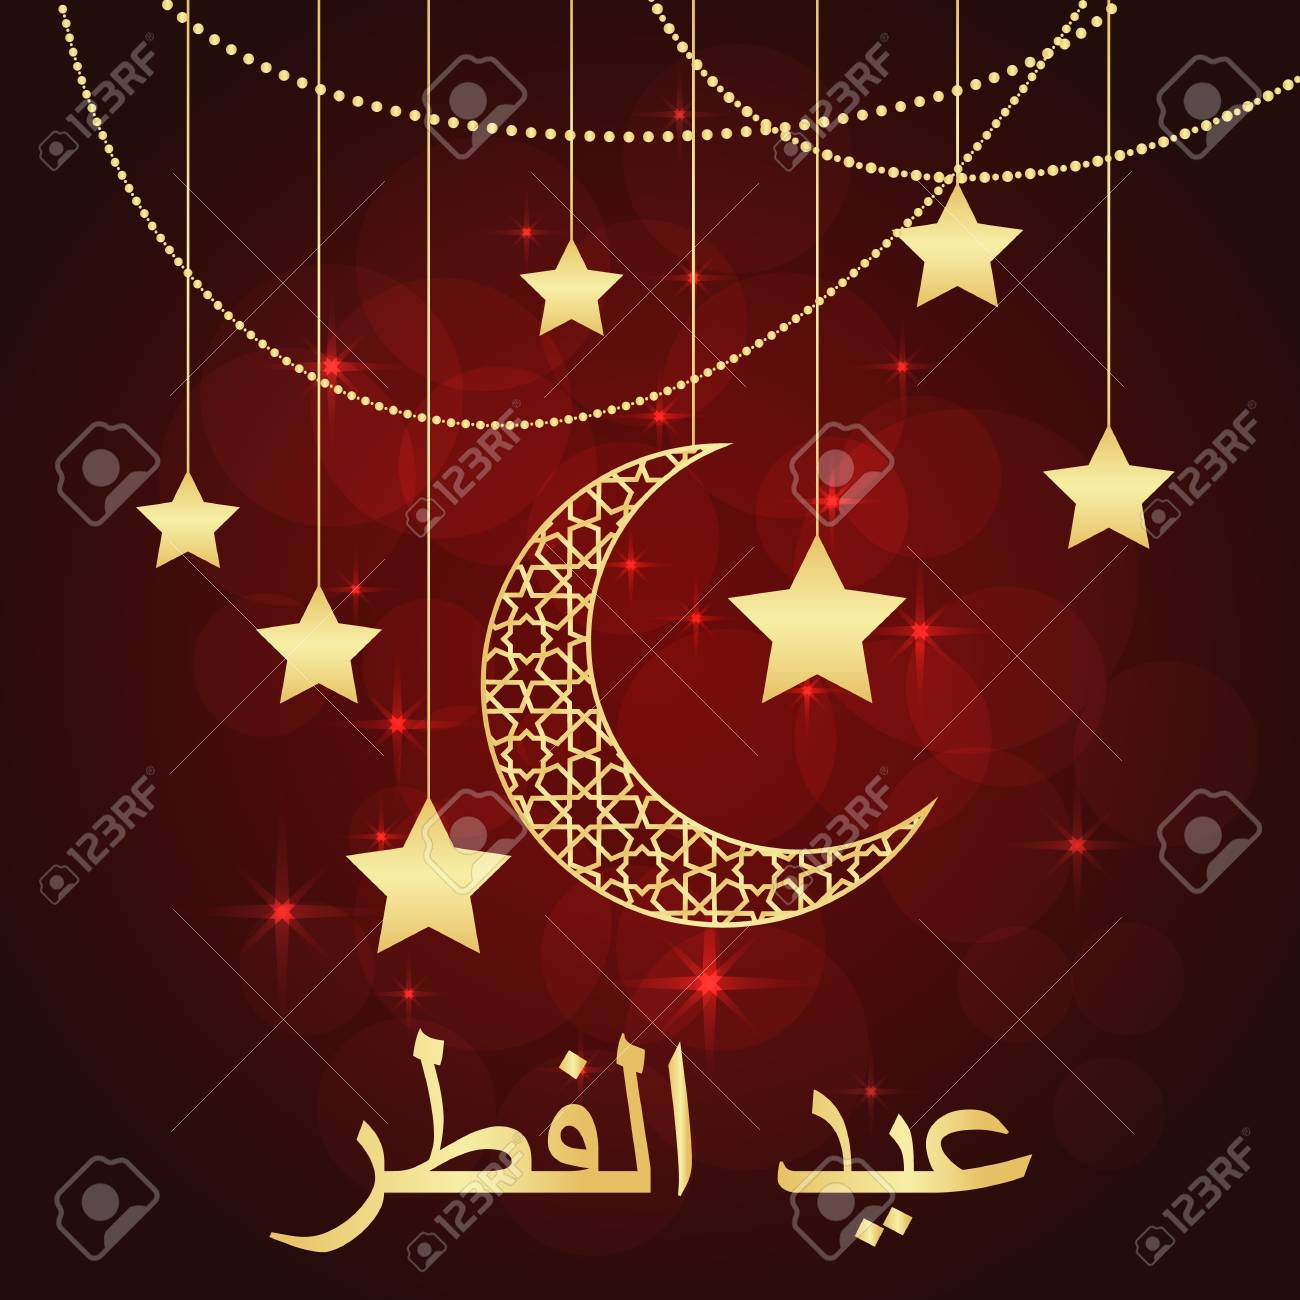 Eid al fitr greeting card on red background vector illustration eid al fitr greeting card on red background vector illustration eid al kristyandbryce Choice Image